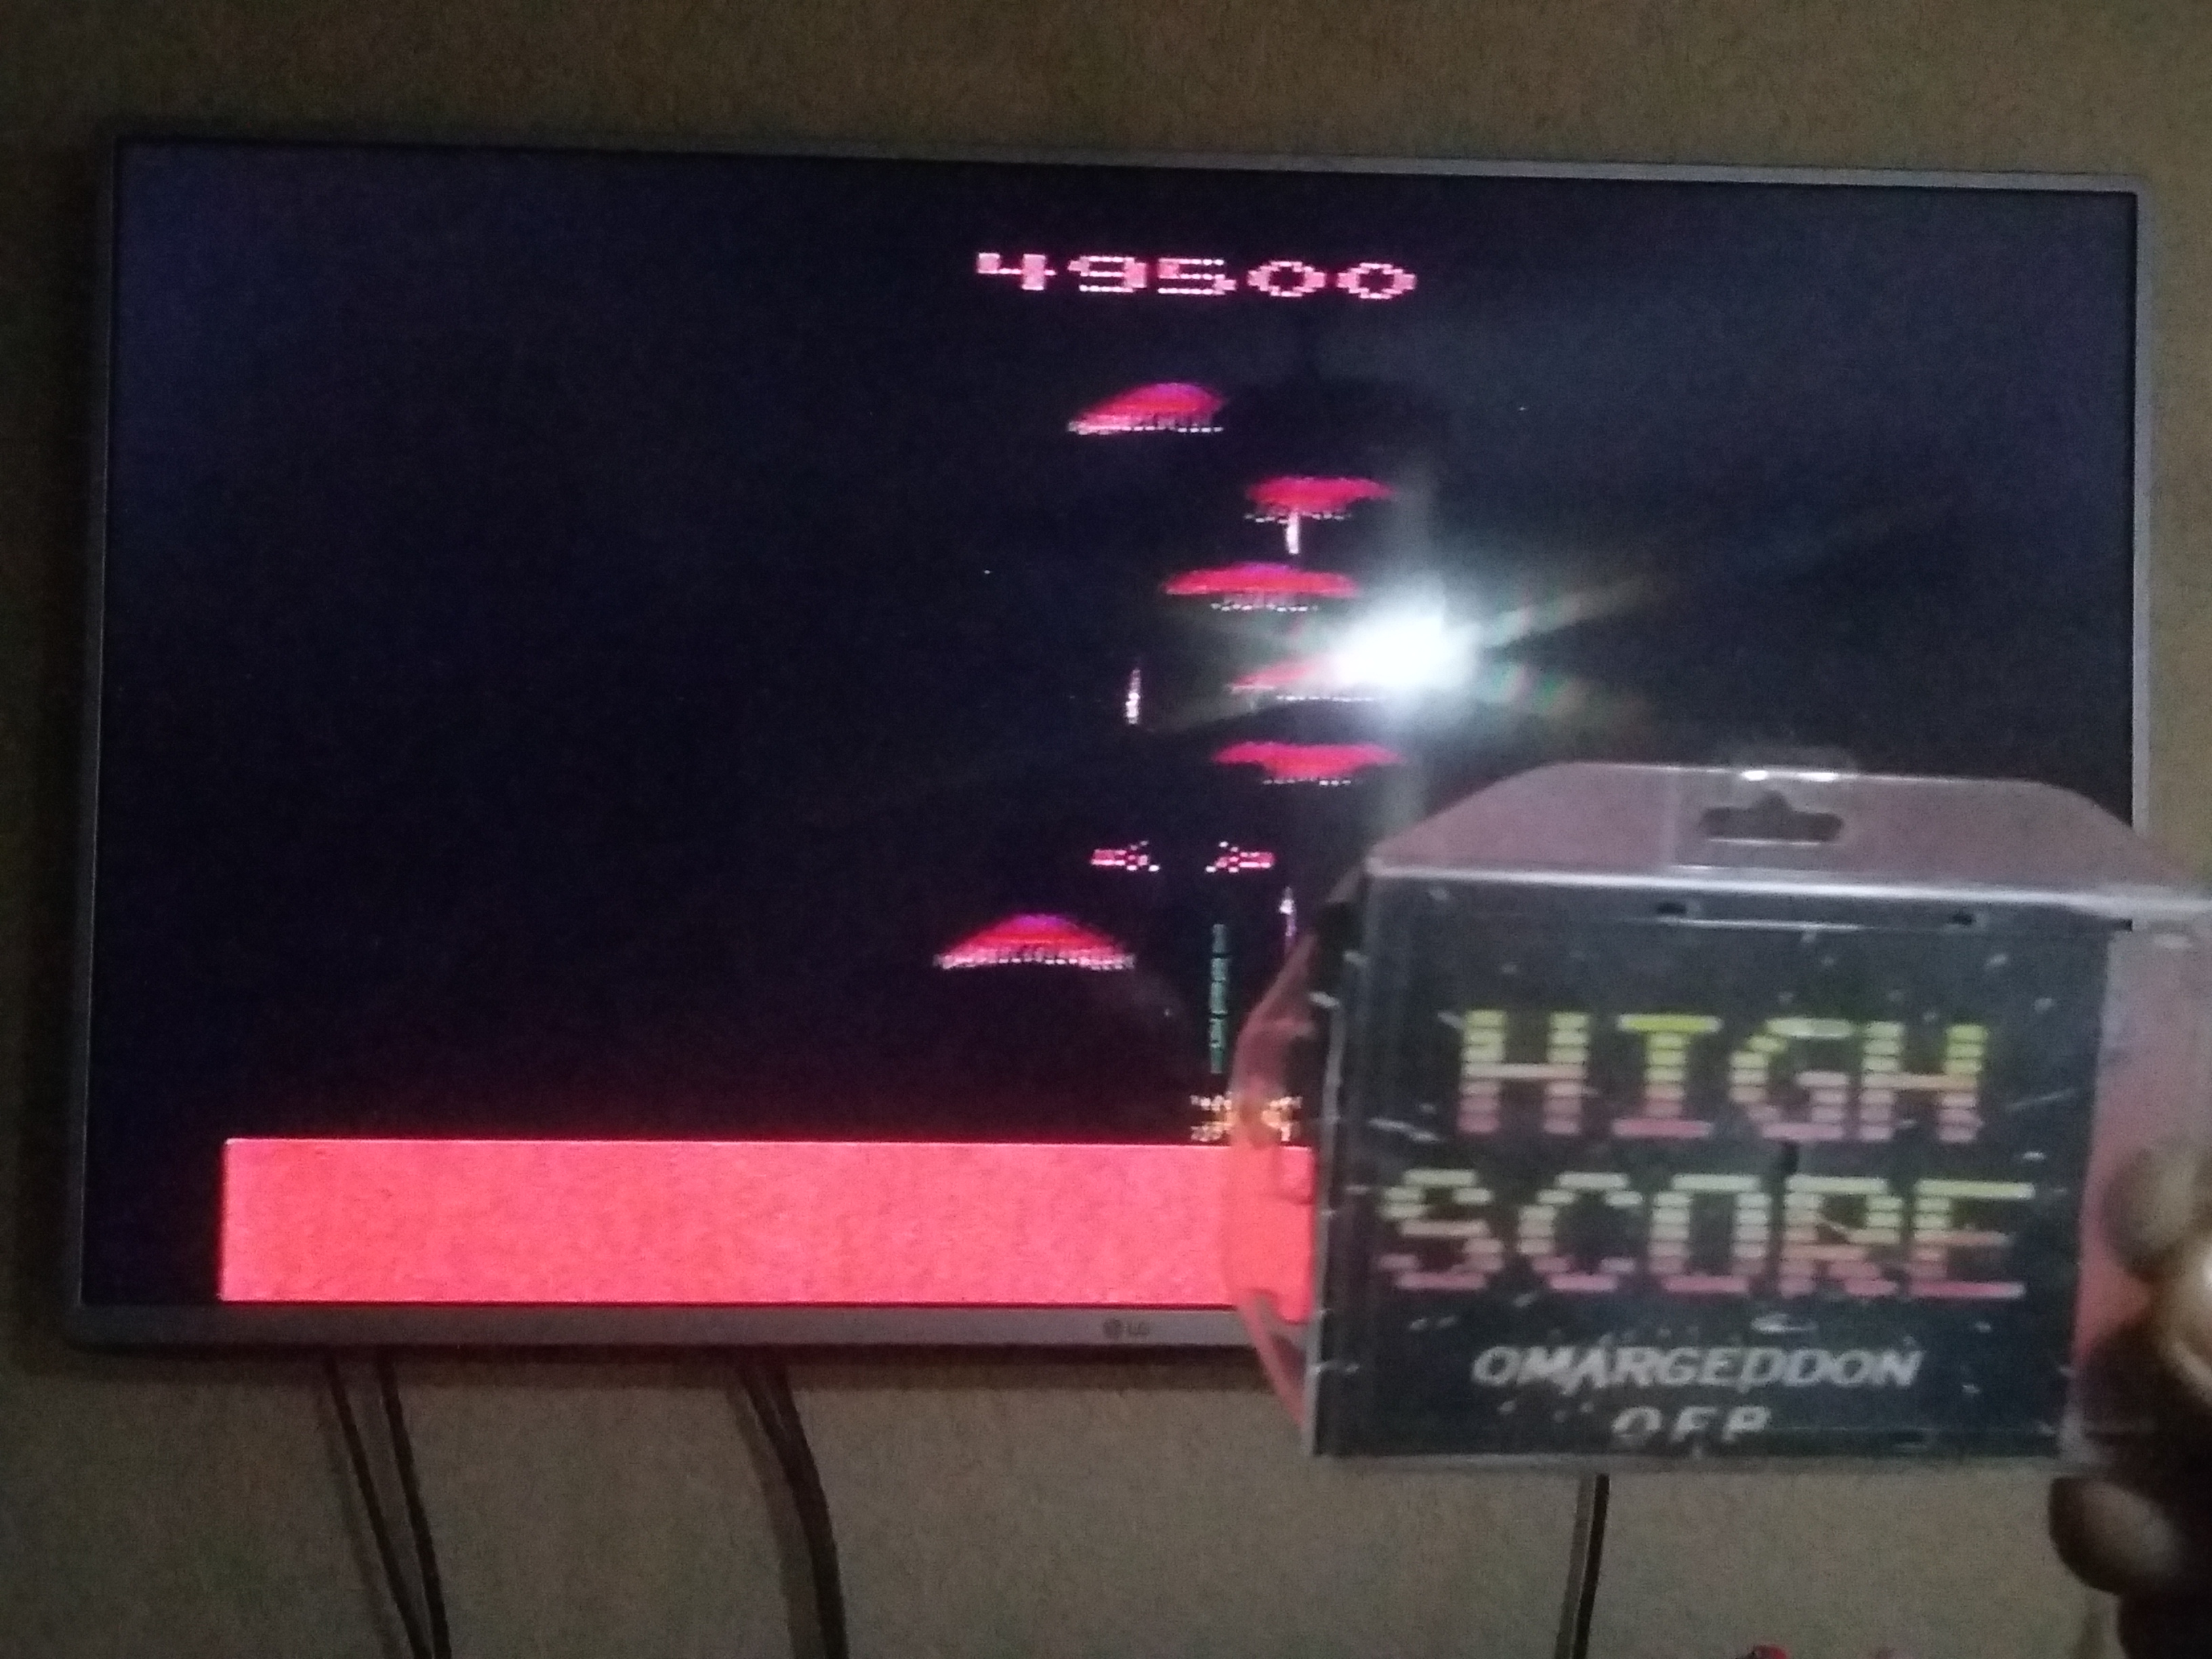 omargeddon: Phoenix (Atari 2600 Expert/A) 49,500 points on 2018-03-24 02:42:06